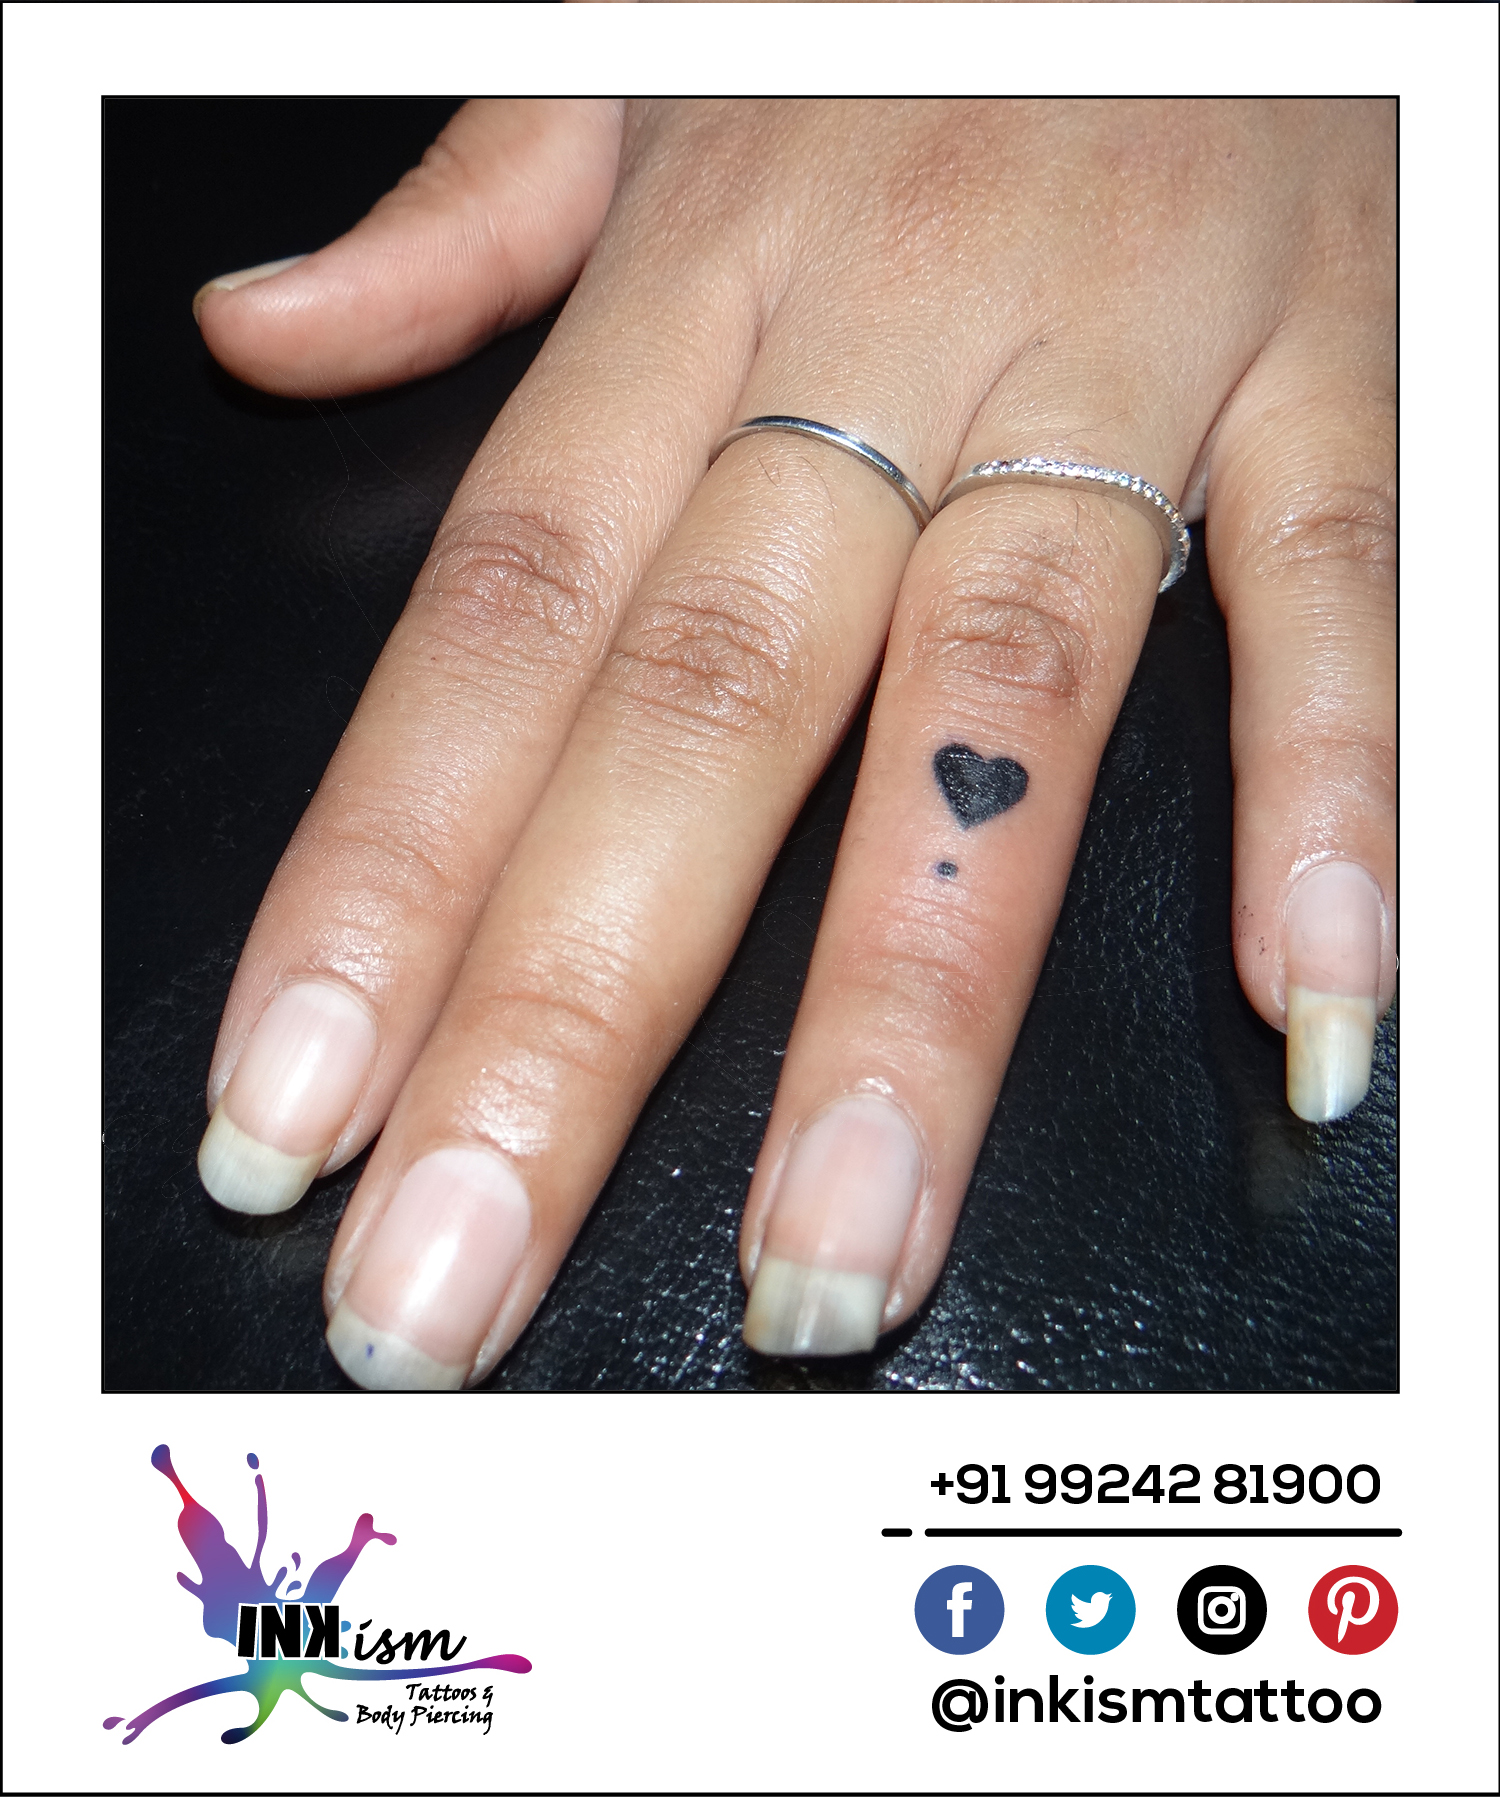 Heart and blood drop tattoo, Heart tattoo, Finger tattoo, Inkism tattoo and body piercing rajkot and gujarat